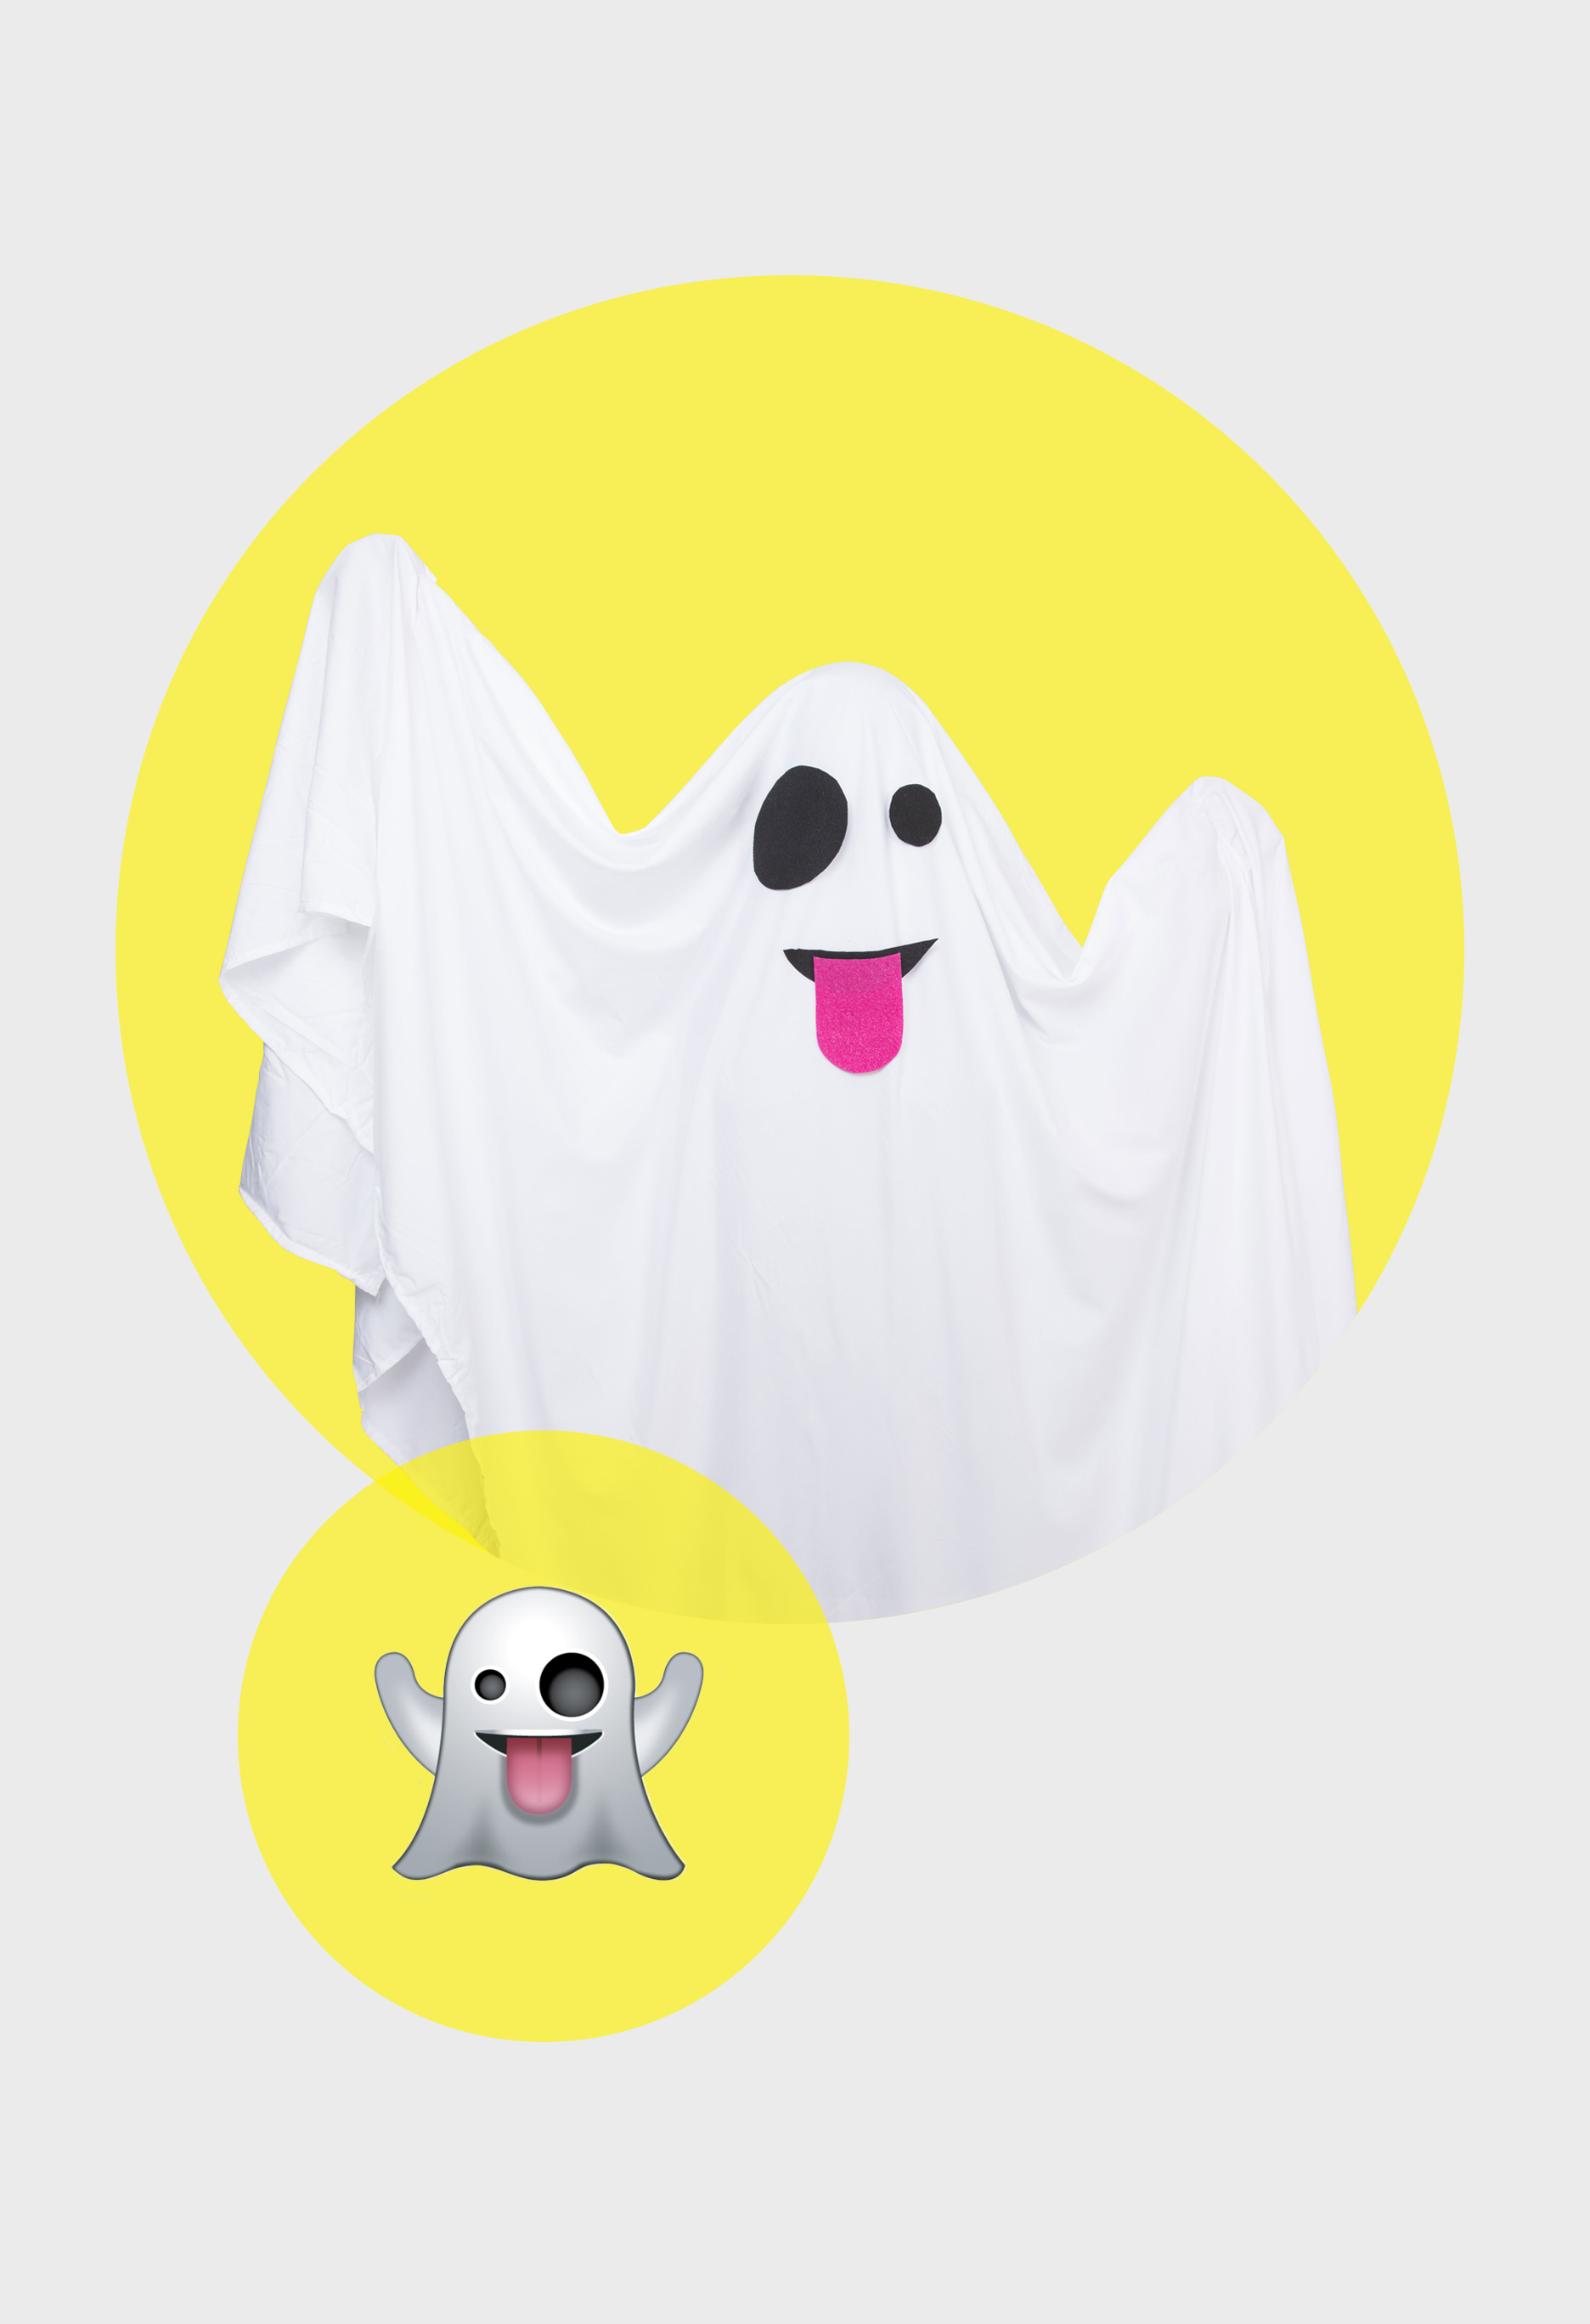 26 diy emoji costumes for halloween 2017 great ideas for 26 diy emoji costumes for halloween 2017 great ideas for homemade emoji costumes solutioingenieria Gallery